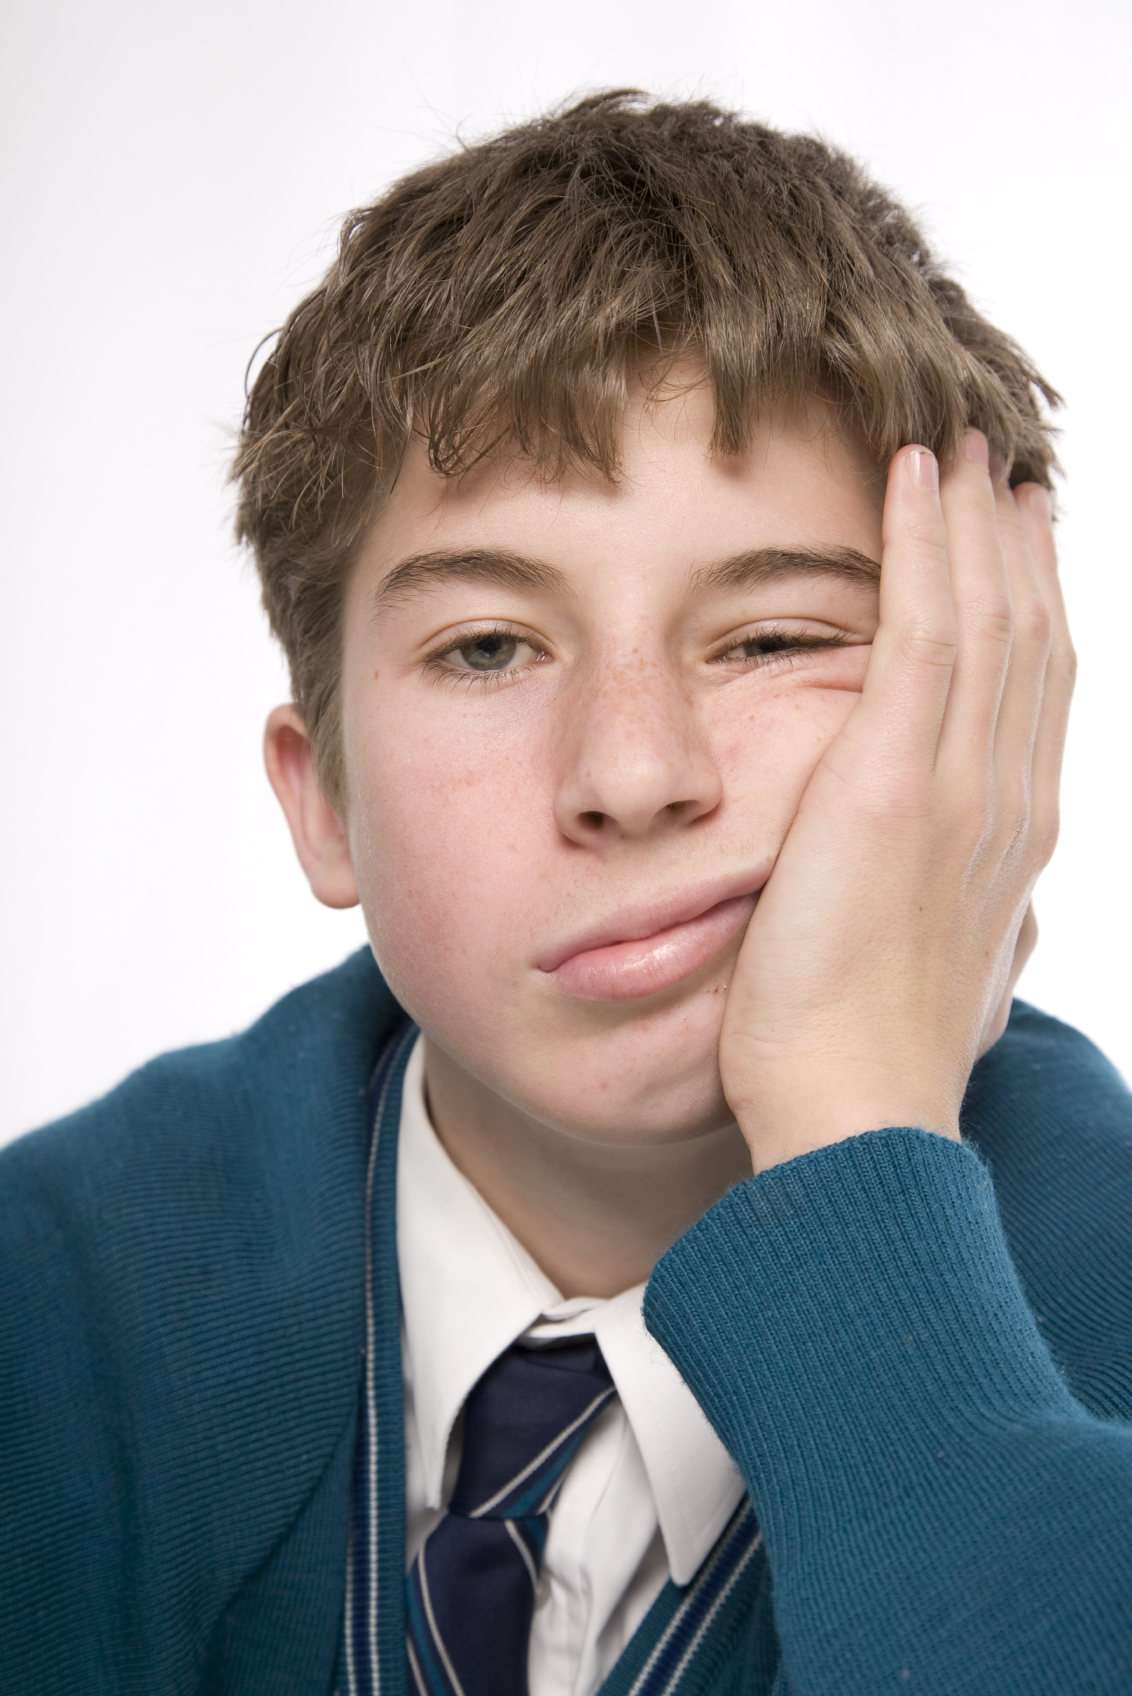 iStock_000010133651Medium (Bored school boy)